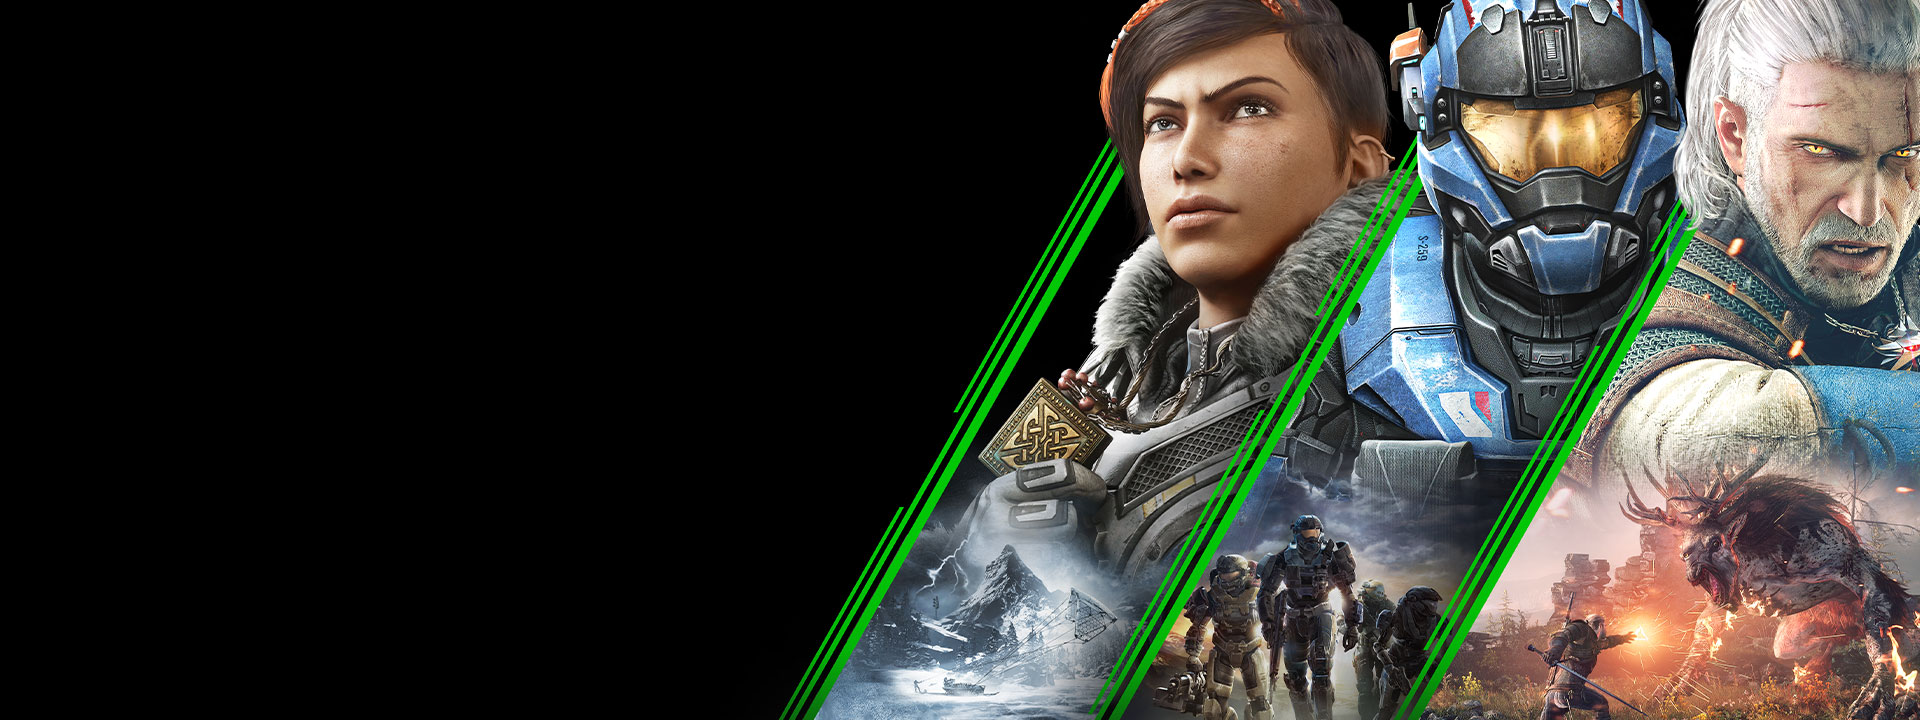 Characters from games available on Xbox Game Pass for PC, including The Outer Worlds, Gears 5, and Halo Reach.